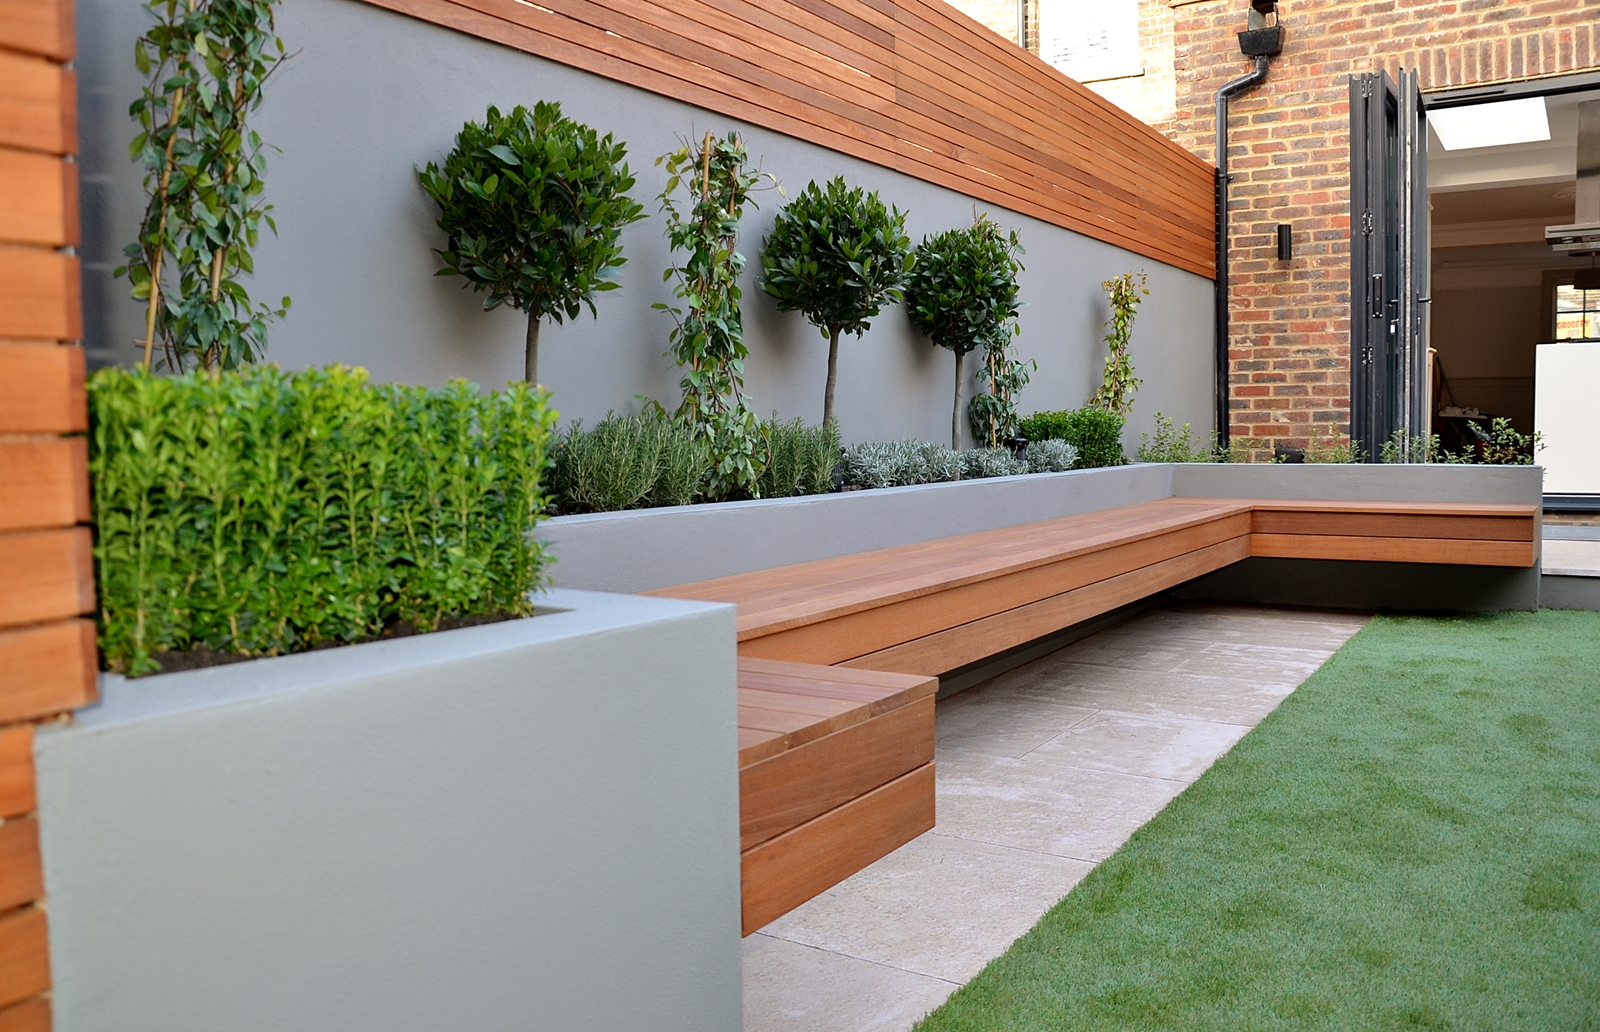 Modern garden design and designer london for Contemporary garden designs and ideas